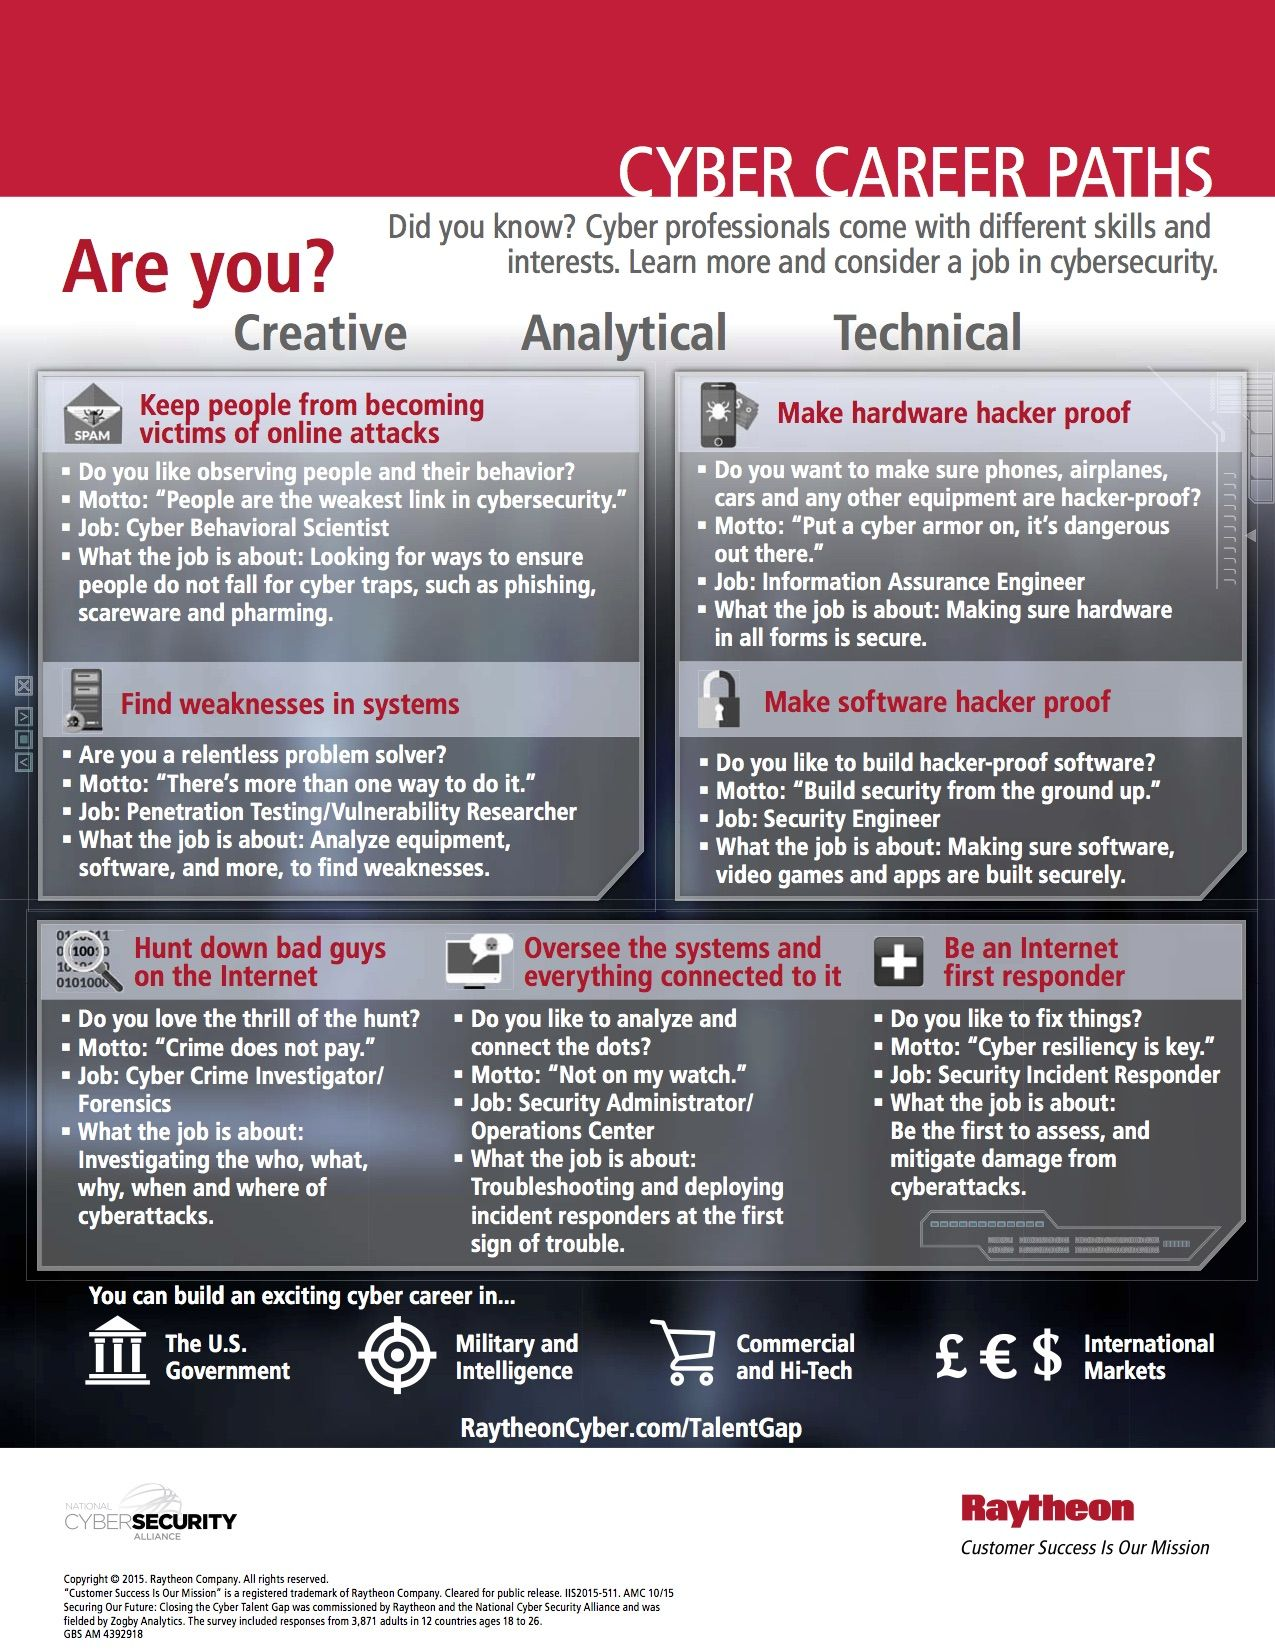 Cyber Career Paths Infographic Cyberaware Cyber Security Education Cyber Security Career Cyber Security